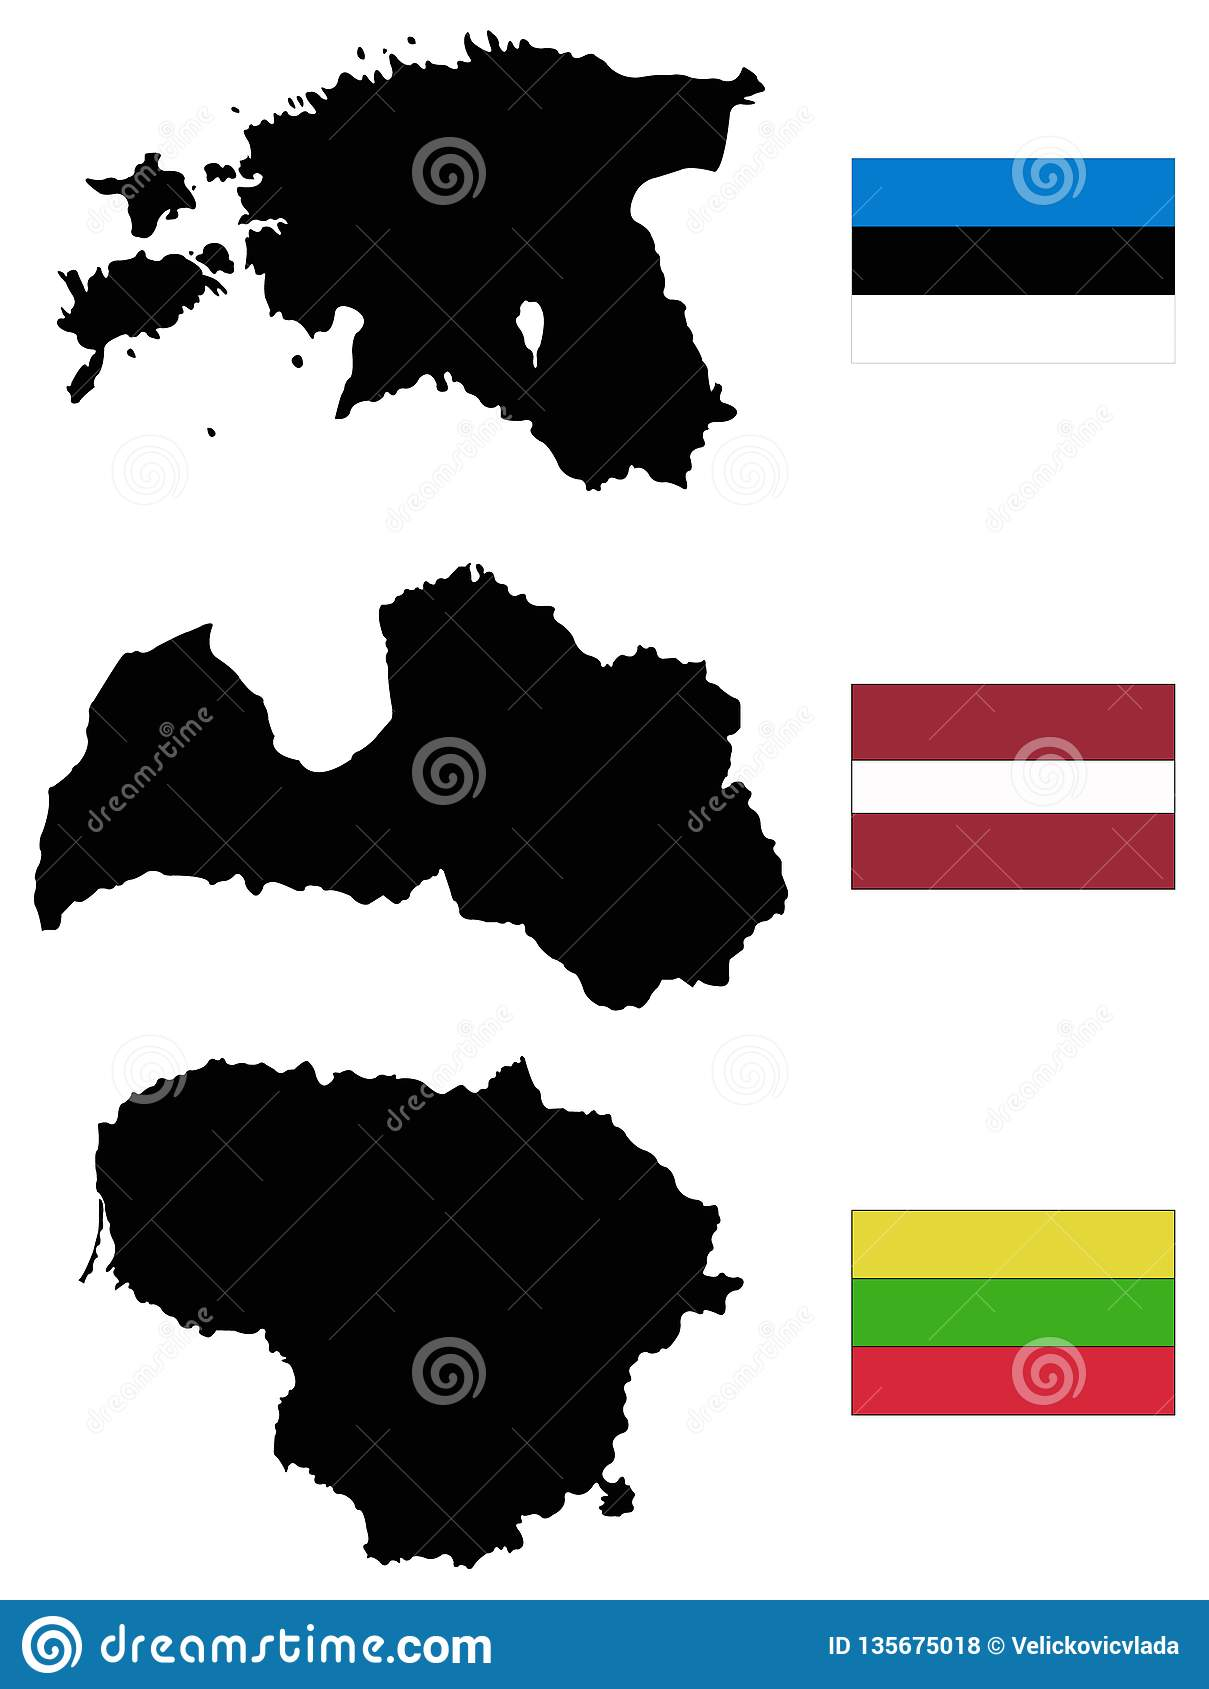 Baltic Countries Map With Flags - Baltic States, Baltic ...